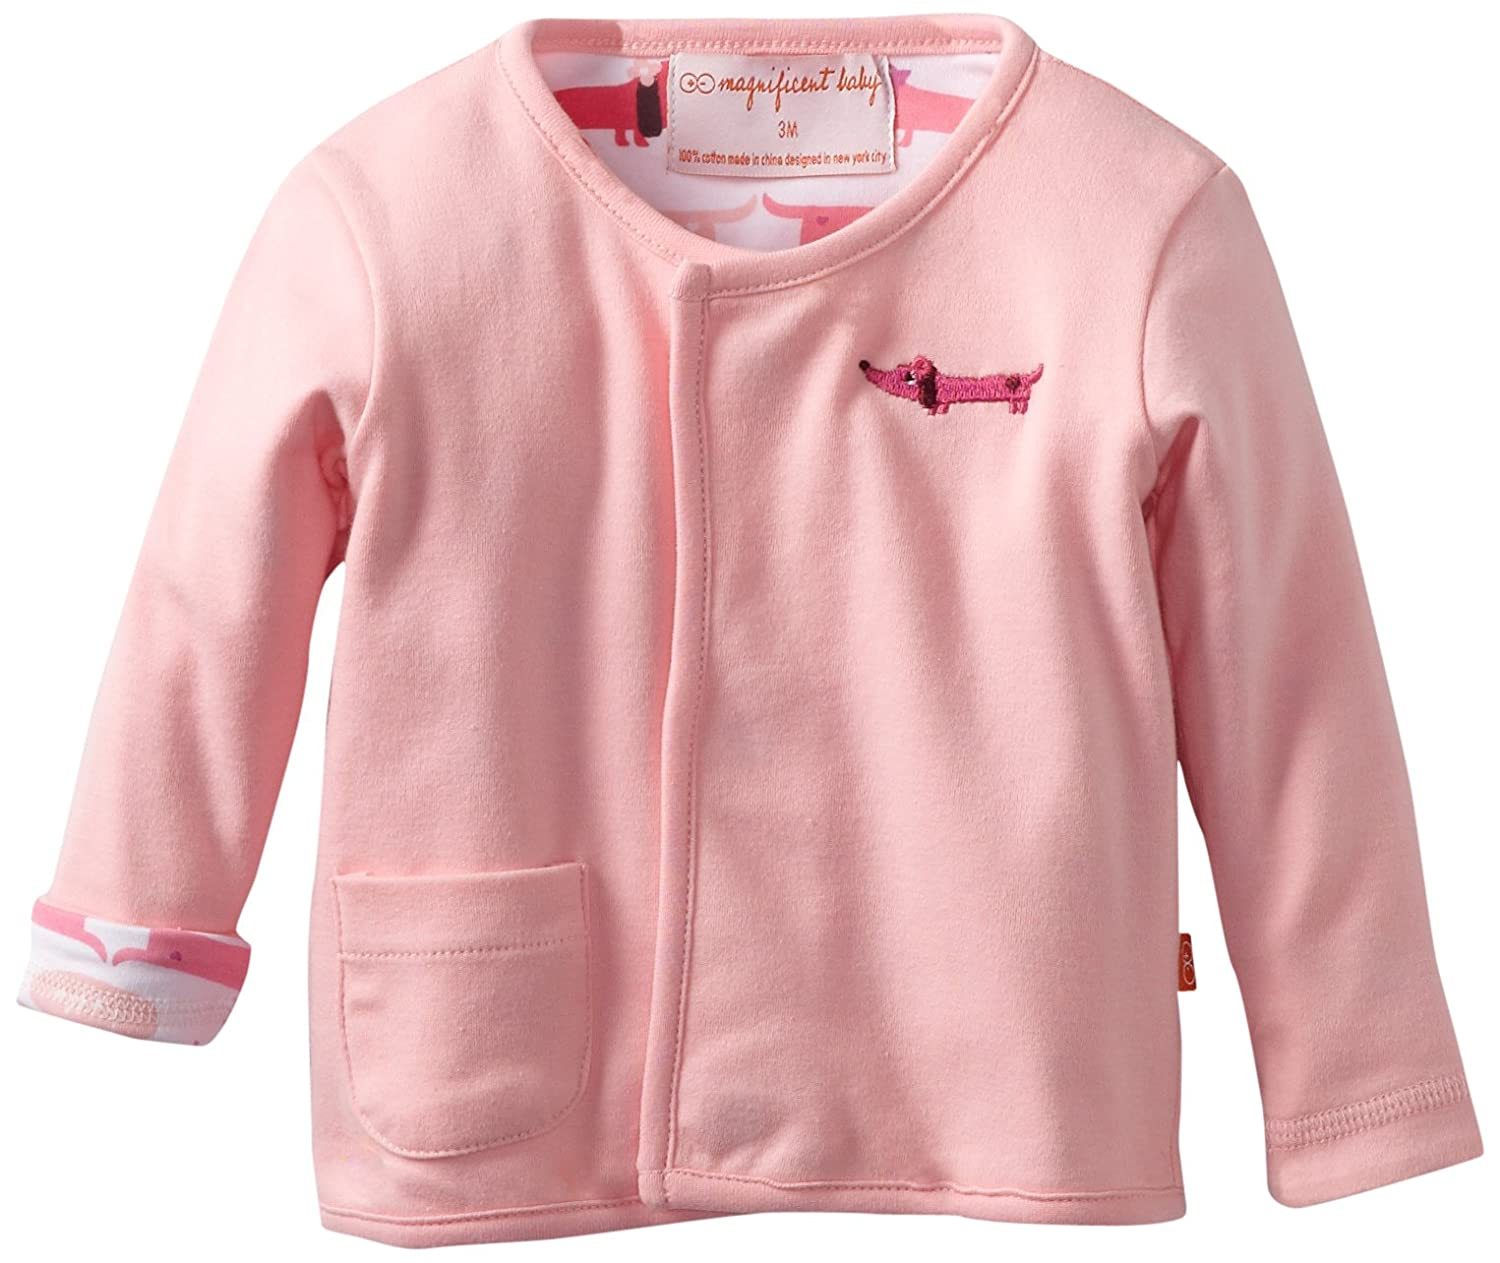 Magnificent Baby Girls Newborn Reversible Cardigan Magnificent Baby Baby